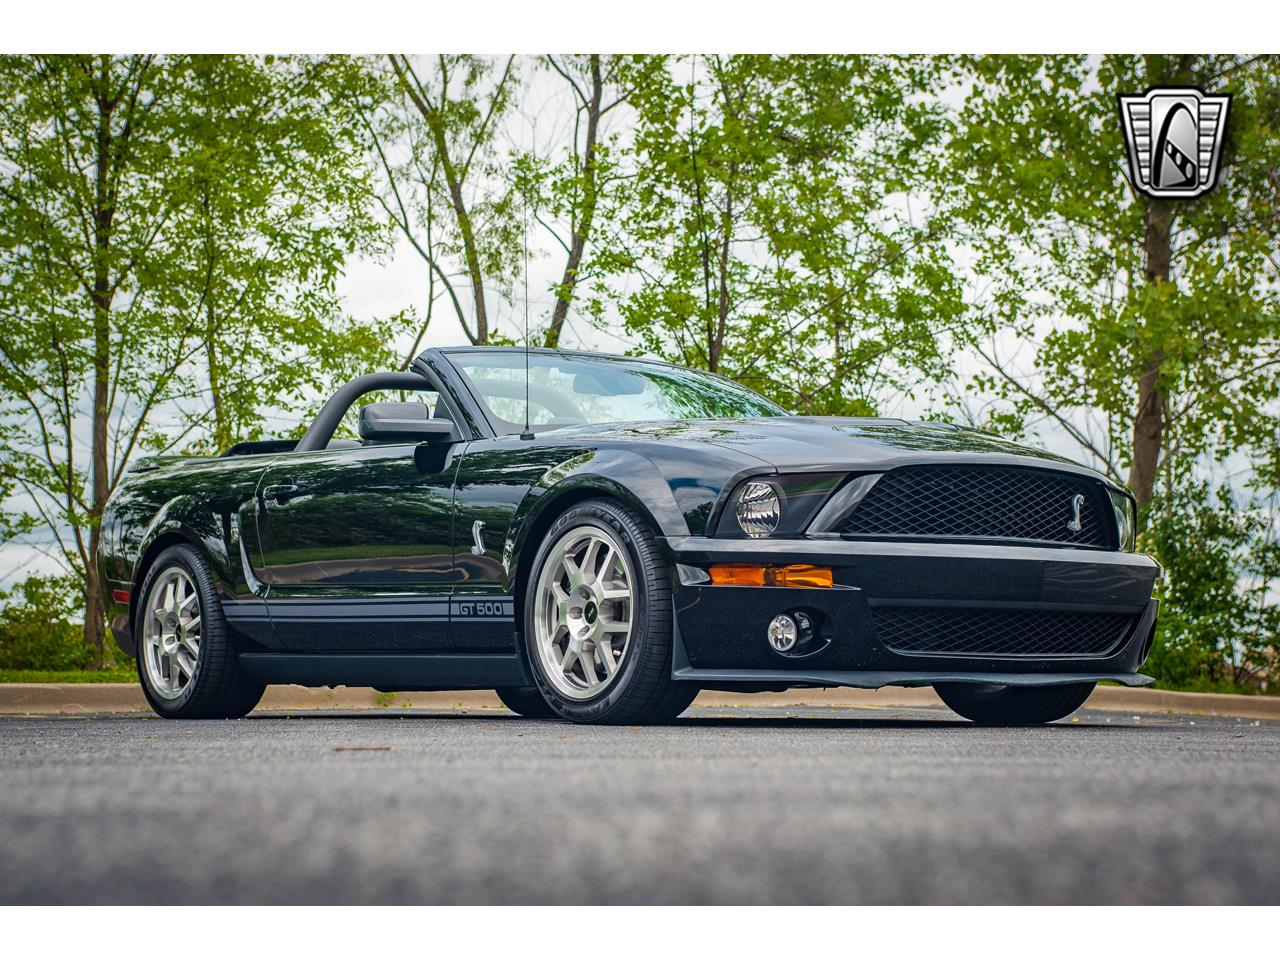 Large Picture of 2007 Mustang - $40,500.00 - QB98